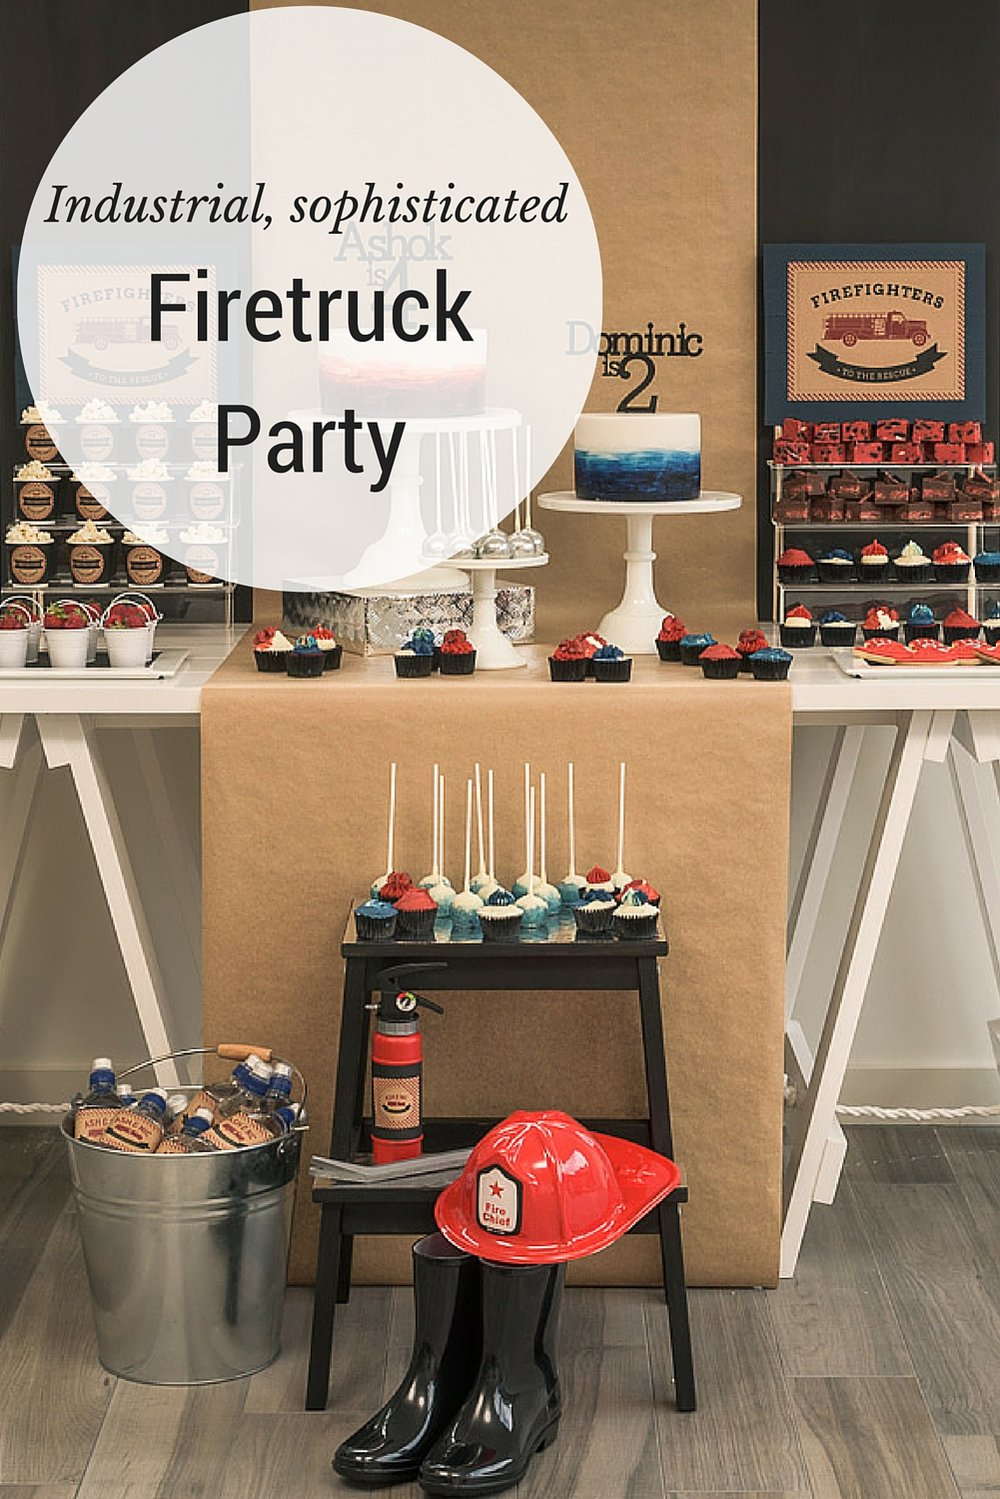 Firetruck party by Planner Something Wonderful Happened